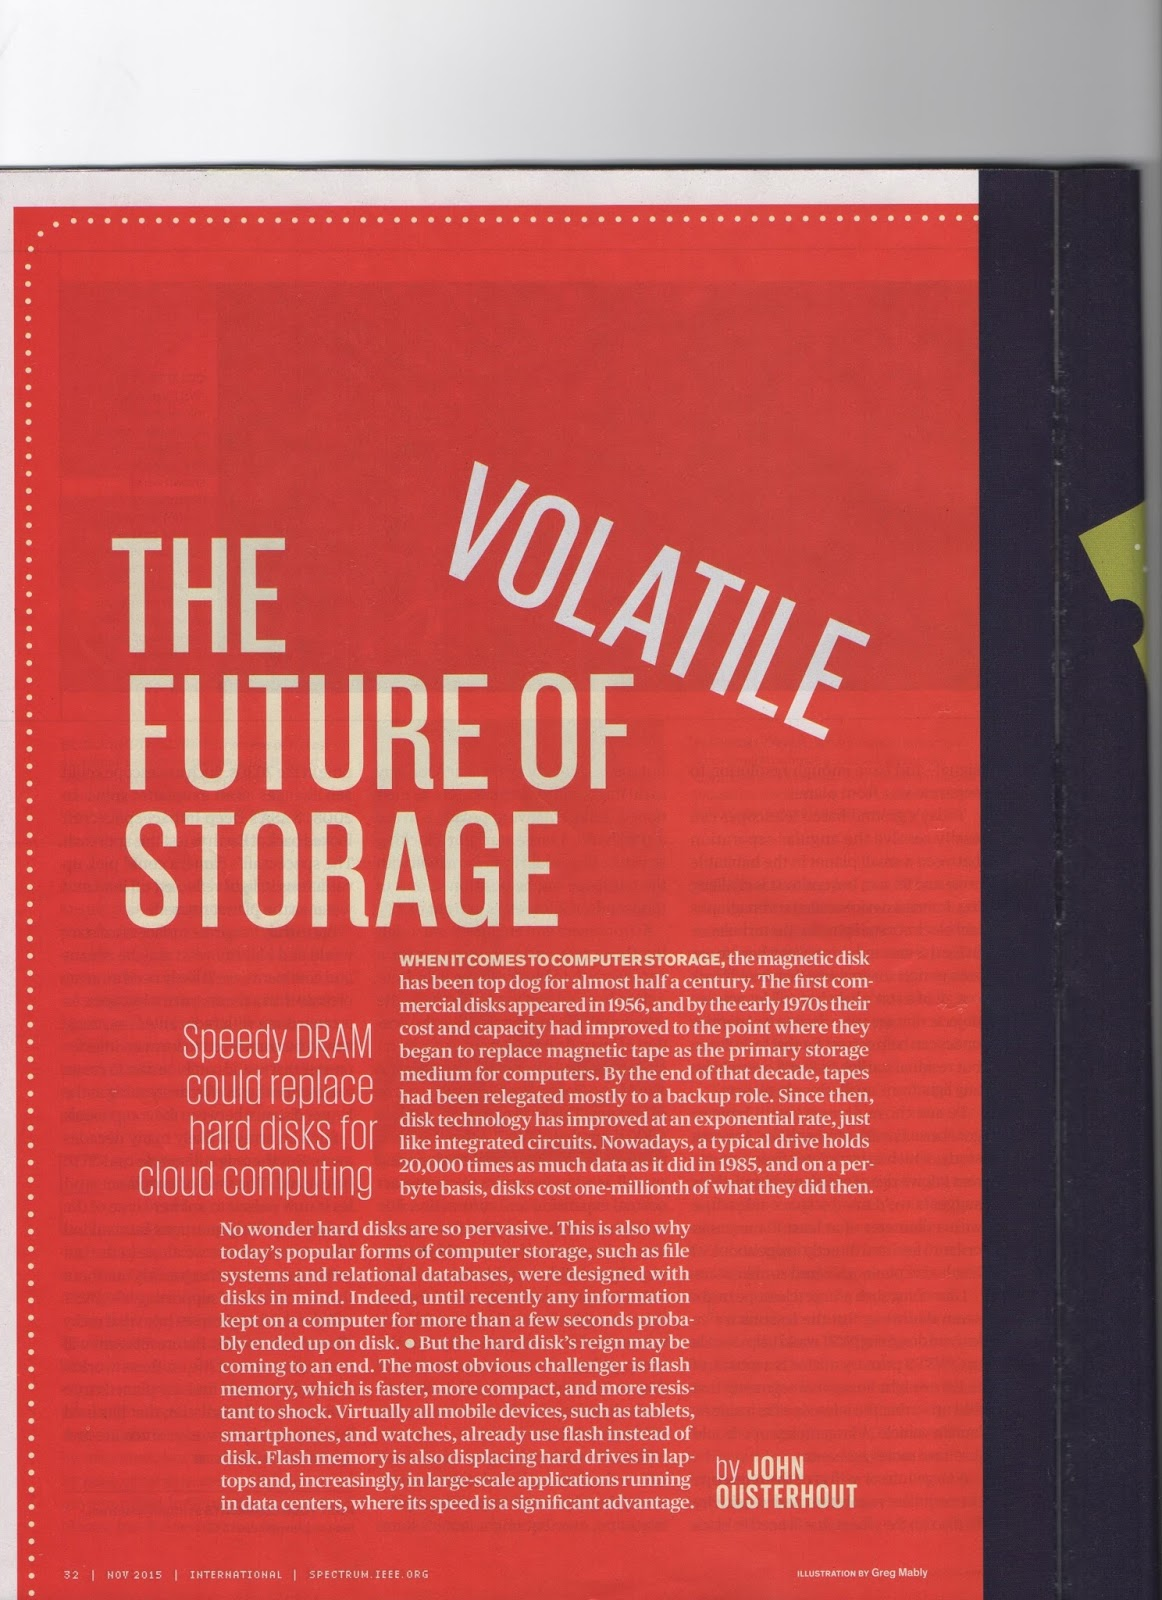 http://engineeeringcomputerworks.com/The_Future_of_Volatile_Storage.pdf